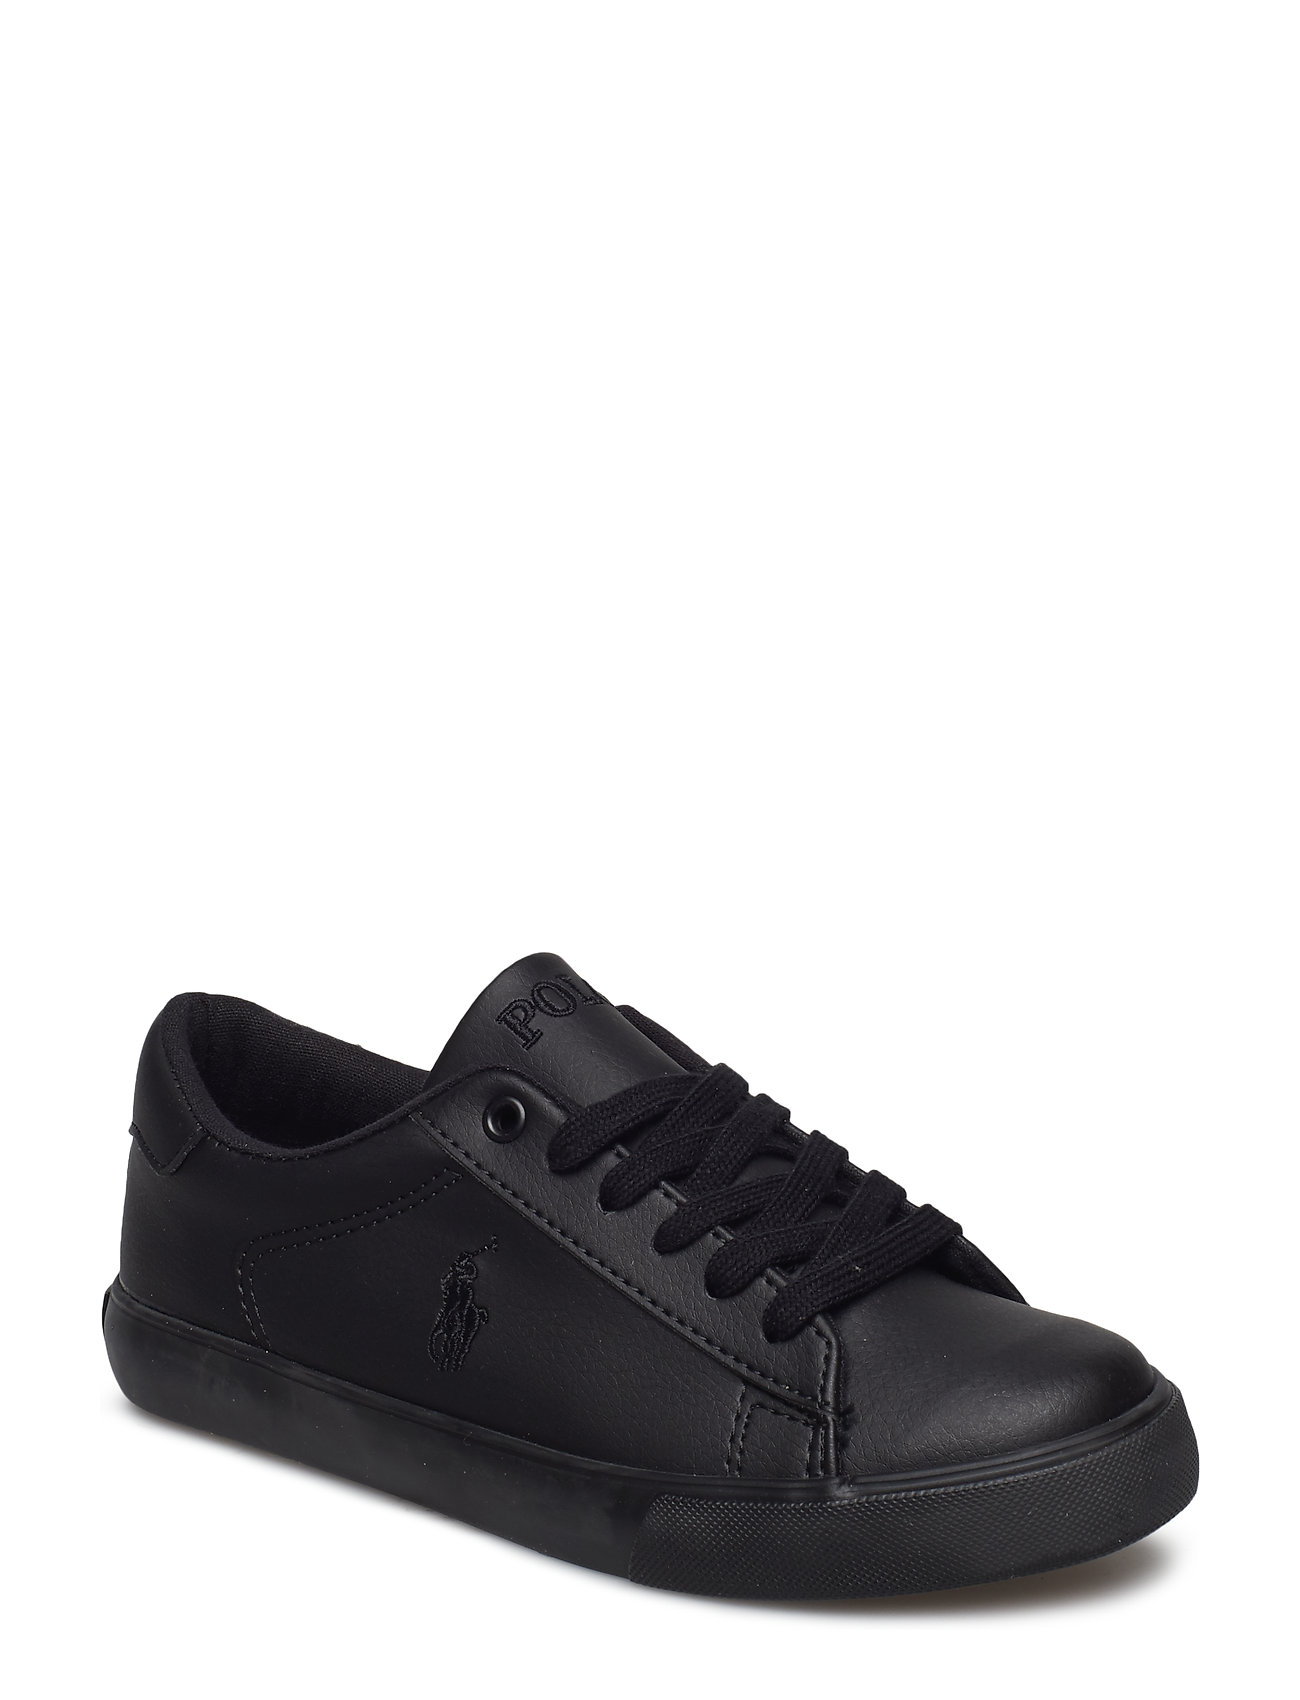 Ralph Lauren Kids EASTEN - TRIPLE BLACK TUMBLED